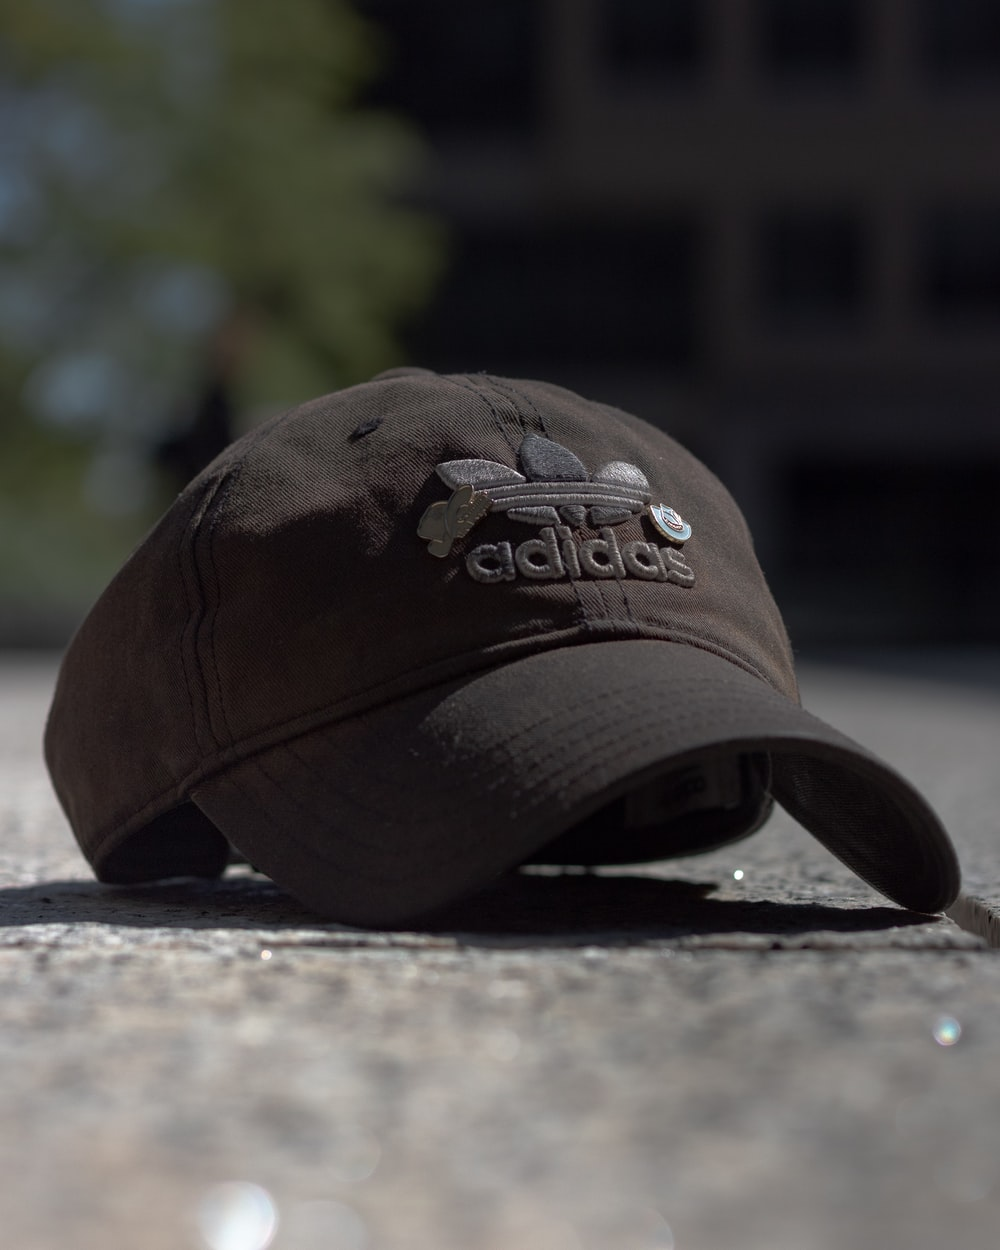 brown and black fitted cap on grey concrete floor